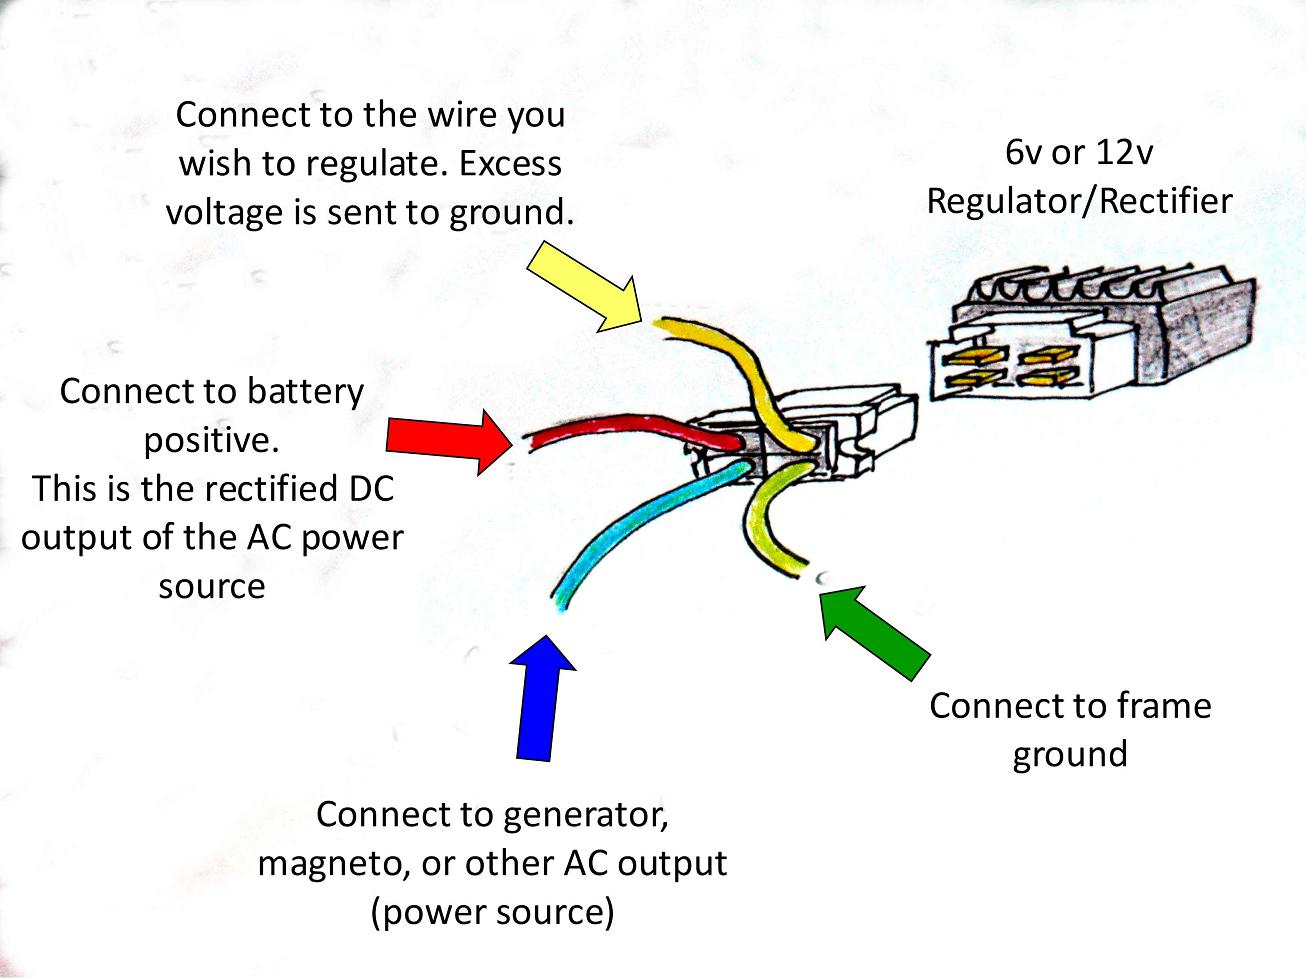 dratv_2267_13269058 4 wire regulator rectifier wiring diagram efcaviation com 4 wire regulator rectifier wiring diagram at webbmarketing.co